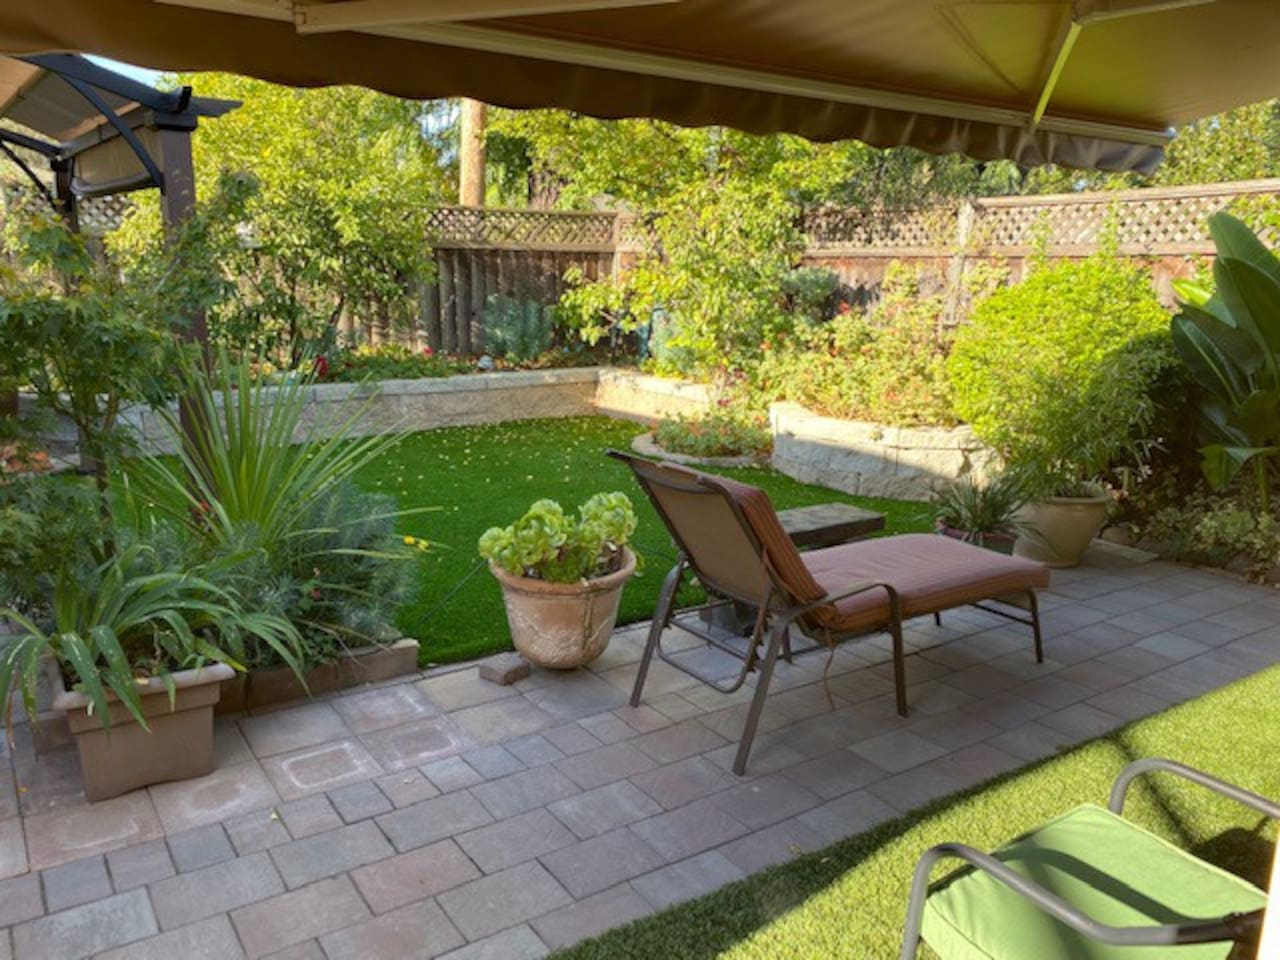 We love the outdoor, and I know our guests love it too, so we made lots of effort to take care of the back yard, you can enjoy it all year long. It's private, as there is no other rooms facing the backyard, except occasional visits from our cats.